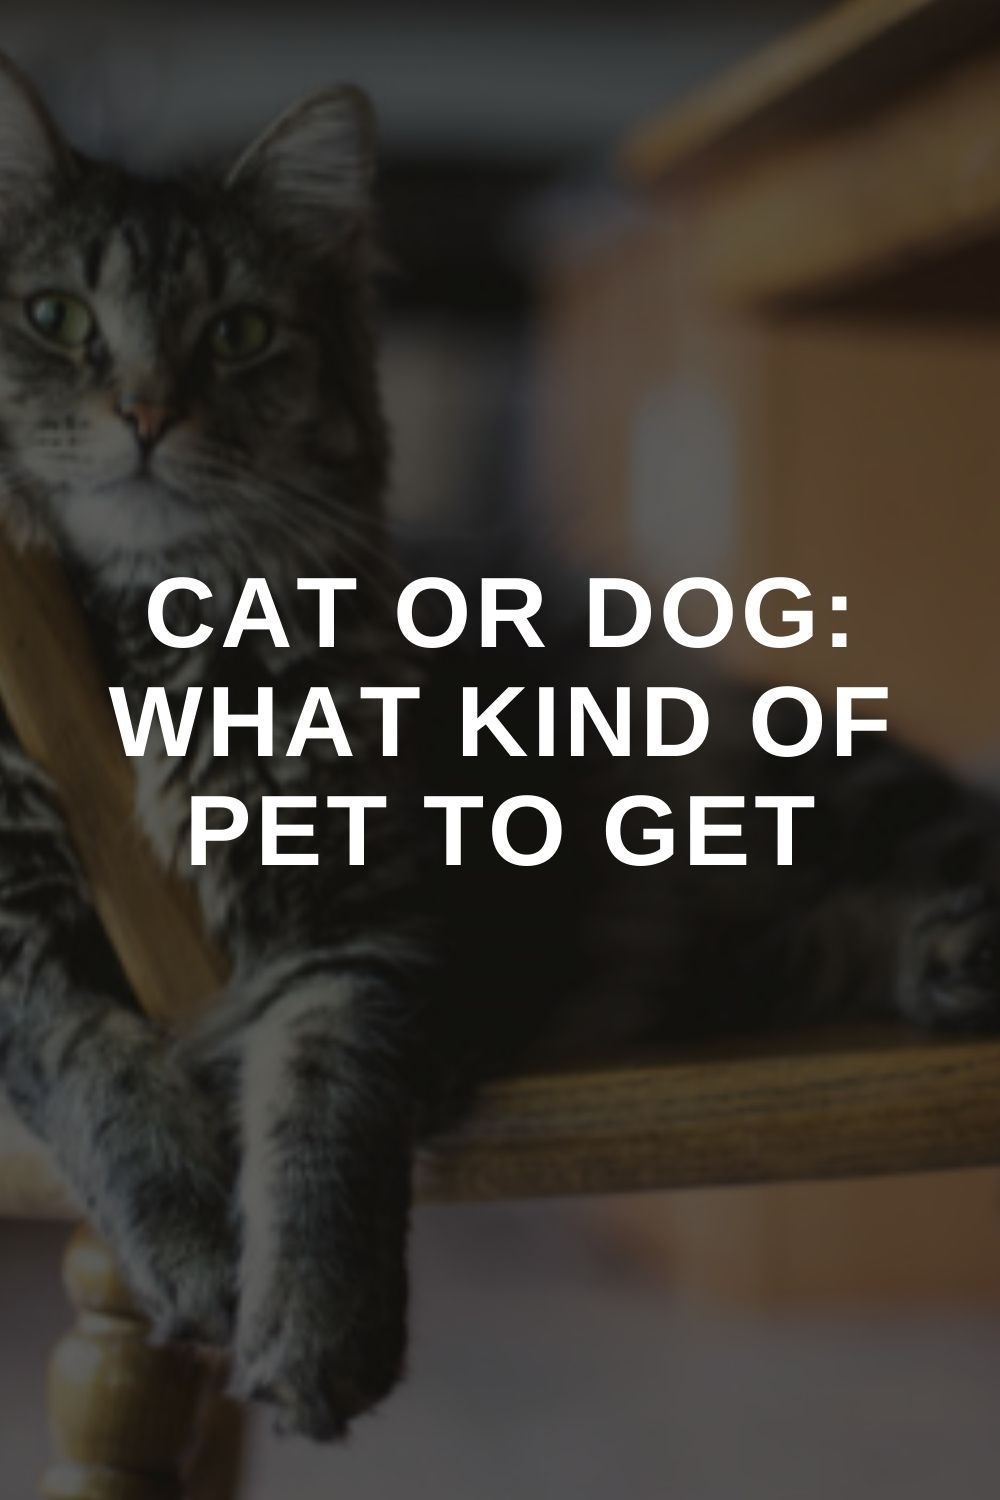 Cat or Dog: What kind of Pet to Get